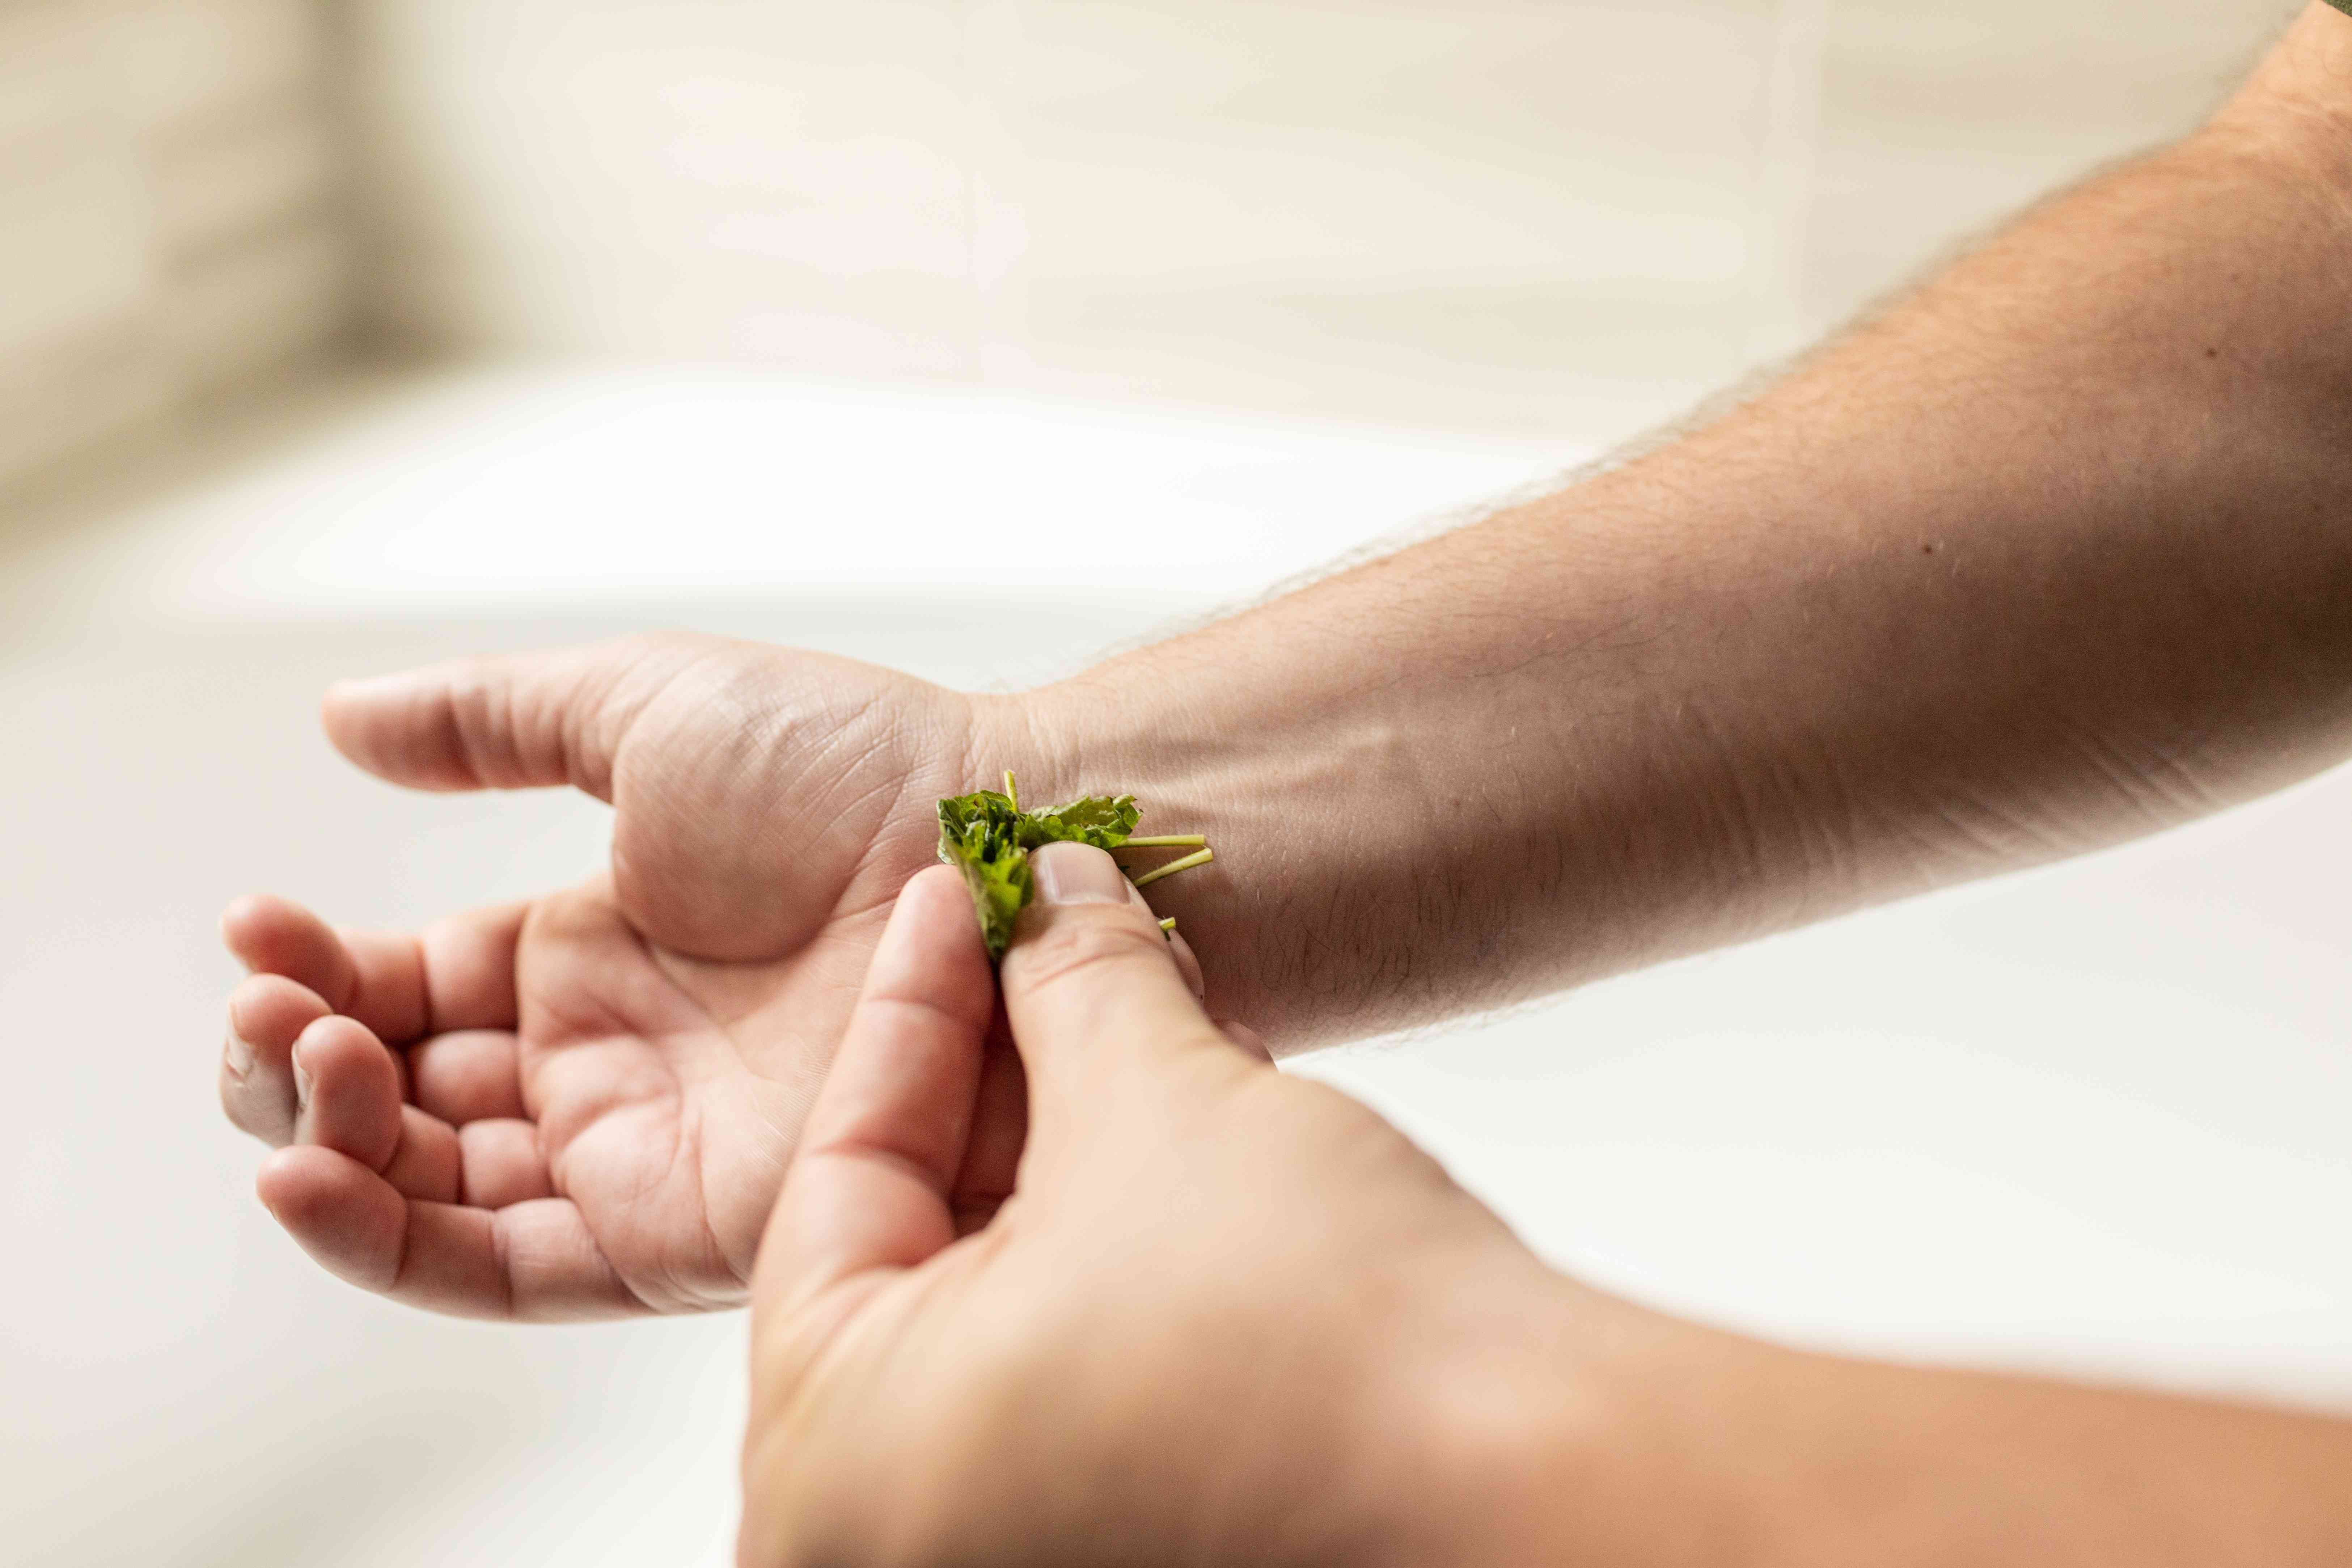 person crushes fresh lemon balm plant on wrists to prevent insect bites